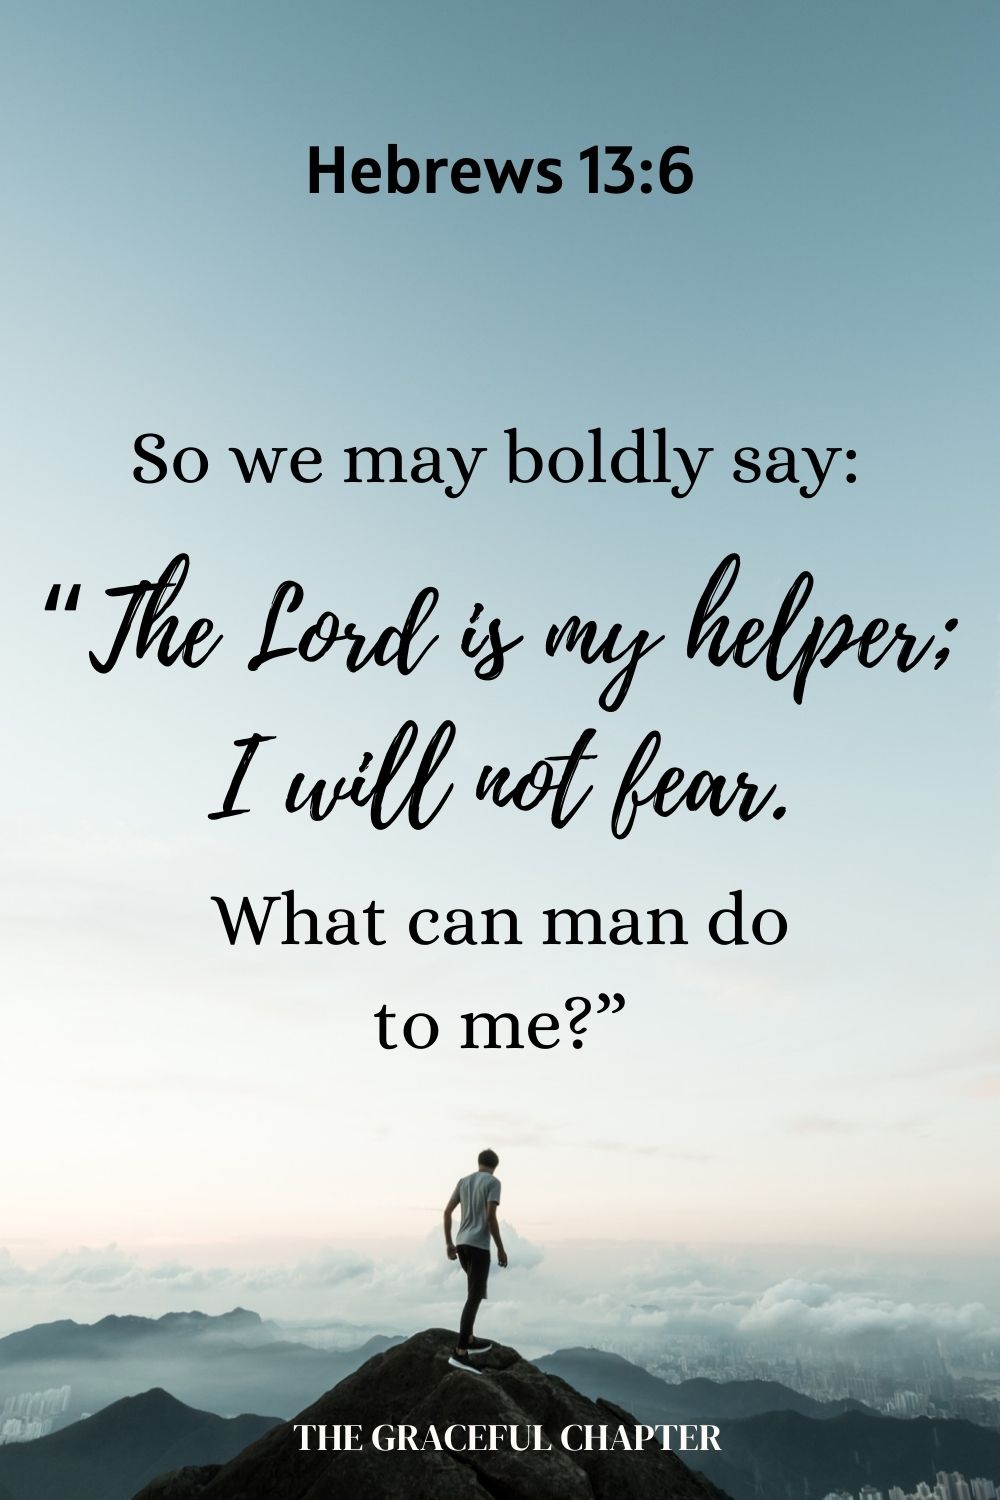 "So we may boldly say: ""The Lord is my helper; I will not fear. What can man do to me?"" Hebrews 13:6"